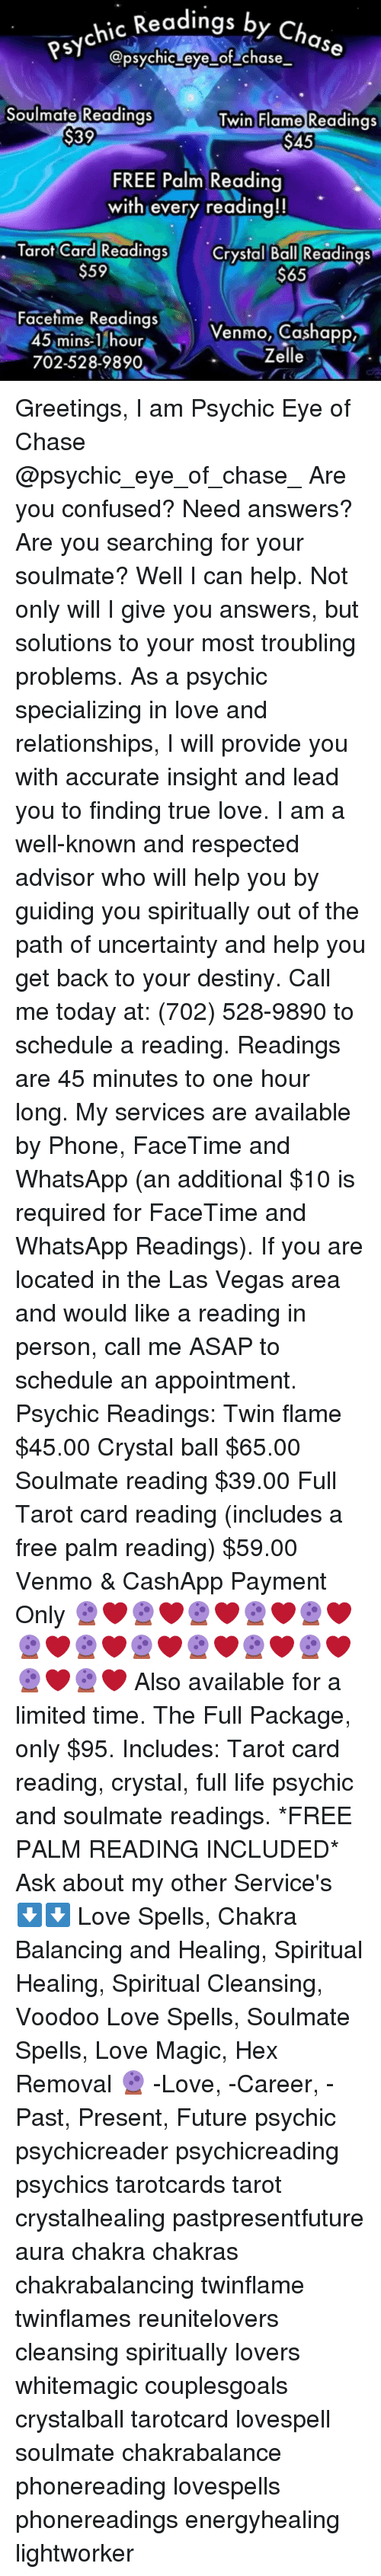 Confused, Destiny, and Facetime: hic Readings by Cho  @psychic eye of chase  Soulmate Readings  S39  win Flame Readings  $45  FREE Palm Reading  with every reading!!  Taro/Card!Readings  $59  Card Readings Crystal Ball Readings  $65  Facetime Readings  45 mins-1 hour  702-528-9890  Venmo, Cashapp  Zelle Greetings, I am Psychic Eye of Chase @psychic_eye_of_chase_ Are you confused? Need answers? Are you searching for your soulmate? Well I can help. Not only will I give you answers, but solutions to your most troubling problems. As a psychic specializing in love and relationships, I will provide you with accurate insight and lead you to finding true love. I am a well-known and respected advisor who will help you by guiding you spiritually out of the path of uncertainty and help you get back to your destiny. Call me today at: (702) 528-9890 to schedule a reading. Readings are 45 minutes to one hour long. My services are available by Phone, FaceTime and WhatsApp (an additional $10 is required for FaceTime and WhatsApp Readings). If you are located in the Las Vegas area and would like a reading in person, call me ASAP to schedule an appointment. Psychic Readings: Twin flame $45.00 Crystal ball $65.00 Soulmate reading $39.00 Full Tarot card reading (includes a free palm reading) $59.00 Venmo & CashApp Payment Only 🔮❤🔮❤🔮❤🔮❤🔮❤🔮❤🔮❤🔮❤🔮❤🔮❤🔮❤🔮❤🔮❤ Also available for a limited time. The Full Package, only $95. Includes: Tarot card reading, crystal, full life psychic and soulmate readings. *FREE PALM READING INCLUDED* Ask about my other Service's ⬇⬇ Love Spells, Chakra Balancing and Healing, Spiritual Healing, Spiritual Cleansing, Voodoo Love Spells, Soulmate Spells, Love Magic, Hex Removal 🔮 -Love, -Career, -Past, Present, Future psychic psychicreader psychicreading psychics tarotcards tarot crystalhealing pastpresentfuture aura chakra chakras chakrabalancing twinflame twinflames reunitelovers cleansing spiritually lovers whitemagic couplesgoals crystalball tarotcard lovespell sou